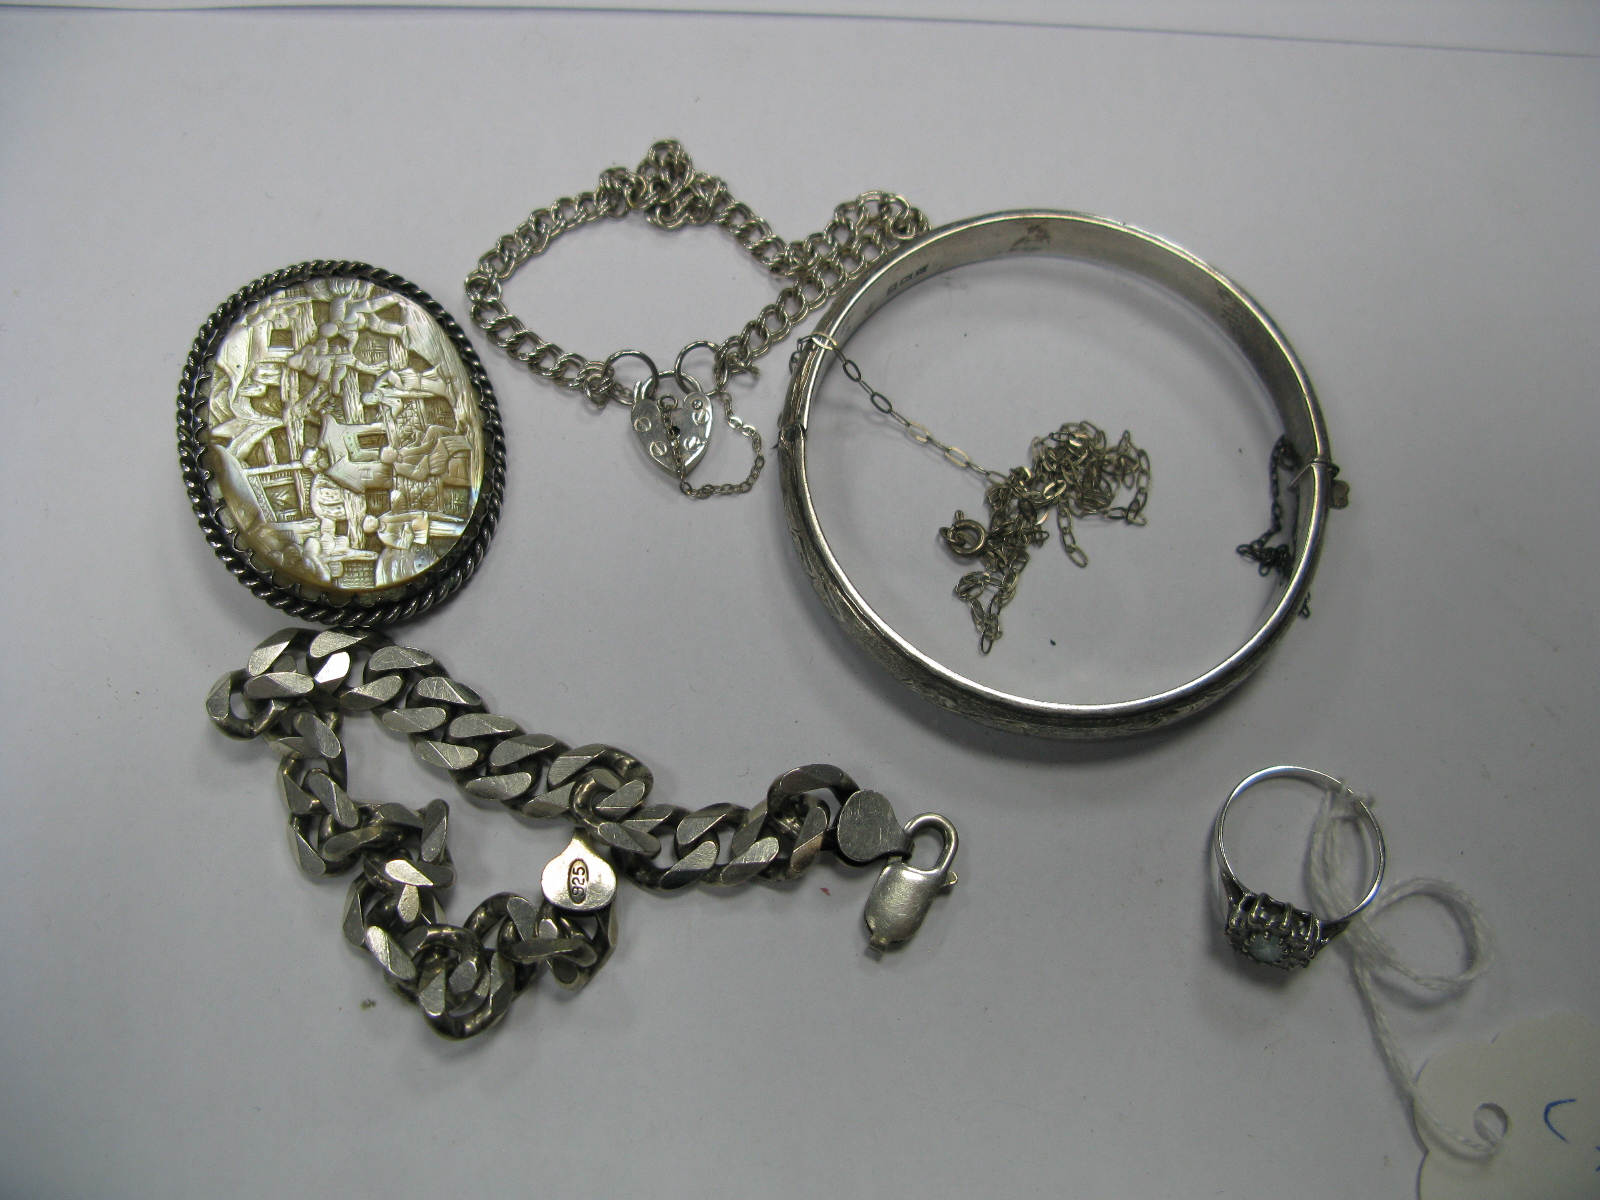 Lot 1407 - Decorative Mother of Pearl Brooch, a hallmarked silver bangle, bracelets and a 9ct white gold